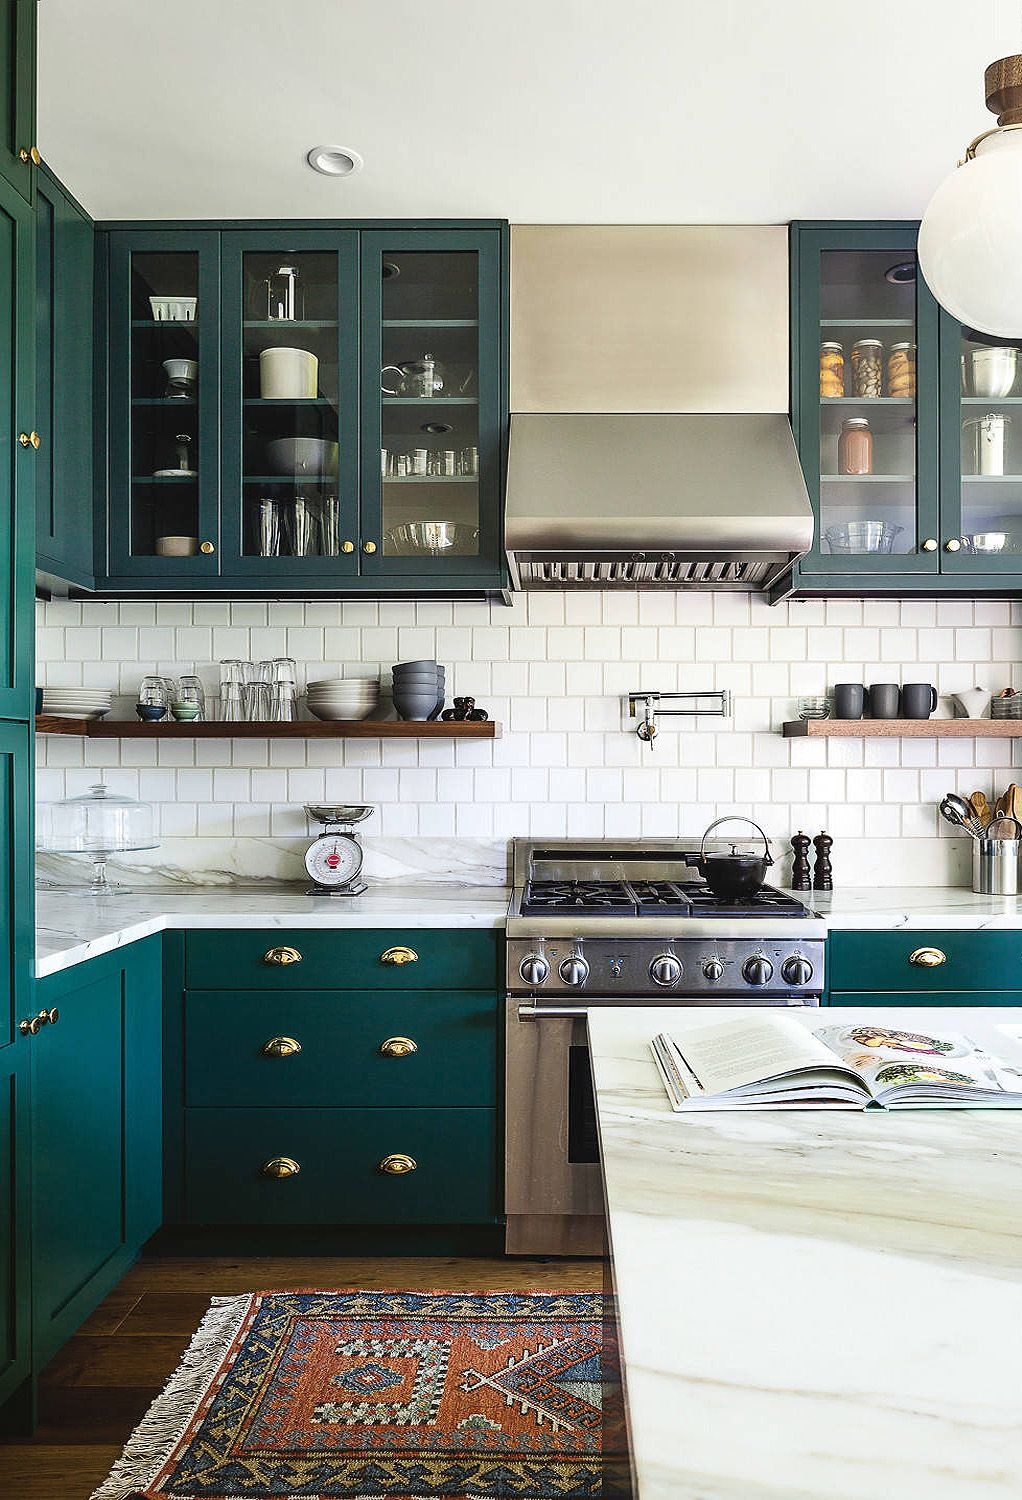 34 top green kitchen cabinets good for kitchen get ideas in 2020 green kitchen on kitchen ideas emerald green id=98543